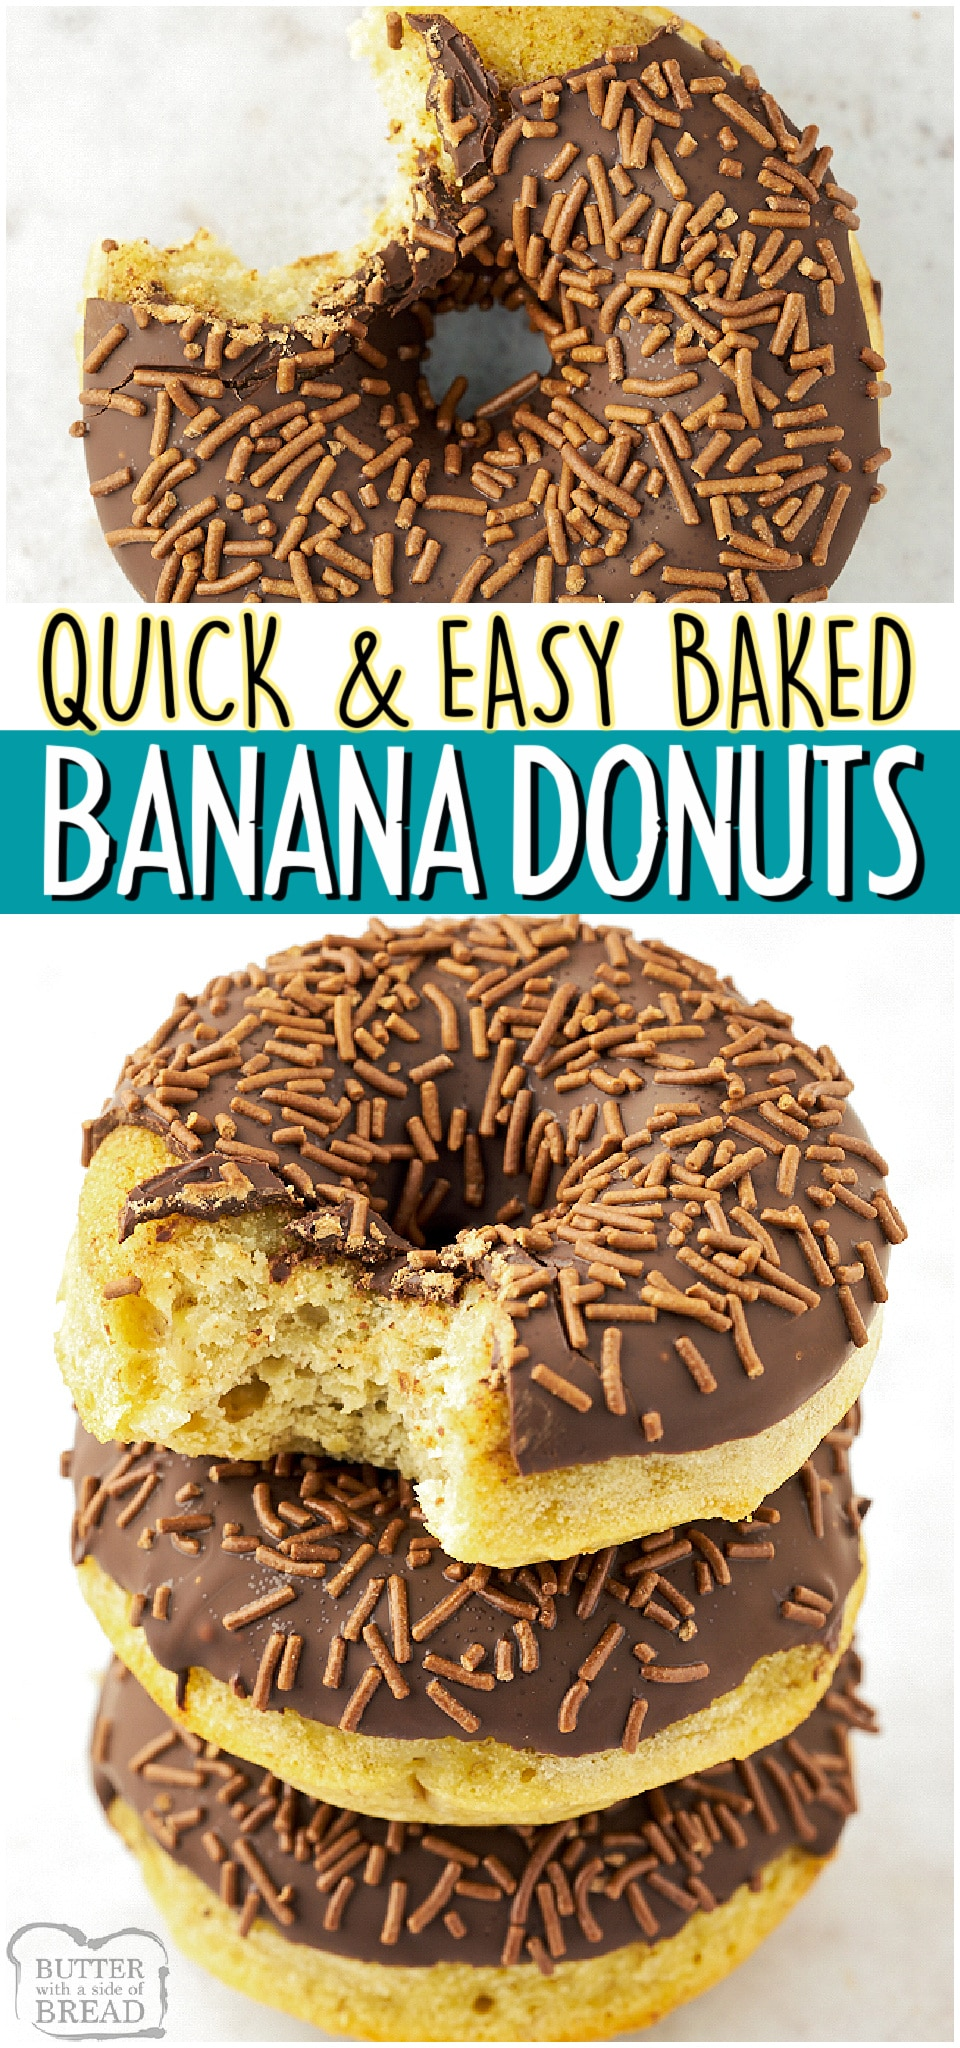 Baked Banana Donuts made with flour, cornstarch, sugar, butter, eggs & ripe bananas! Easy donut recipe covered in chocolate glaze & chocolate sprinkles that everyone loves!#bananas #donuts #breakfast #baked #baking #chocolate #easyrecipe from BUTTER WITH A SIDE OF BREAD